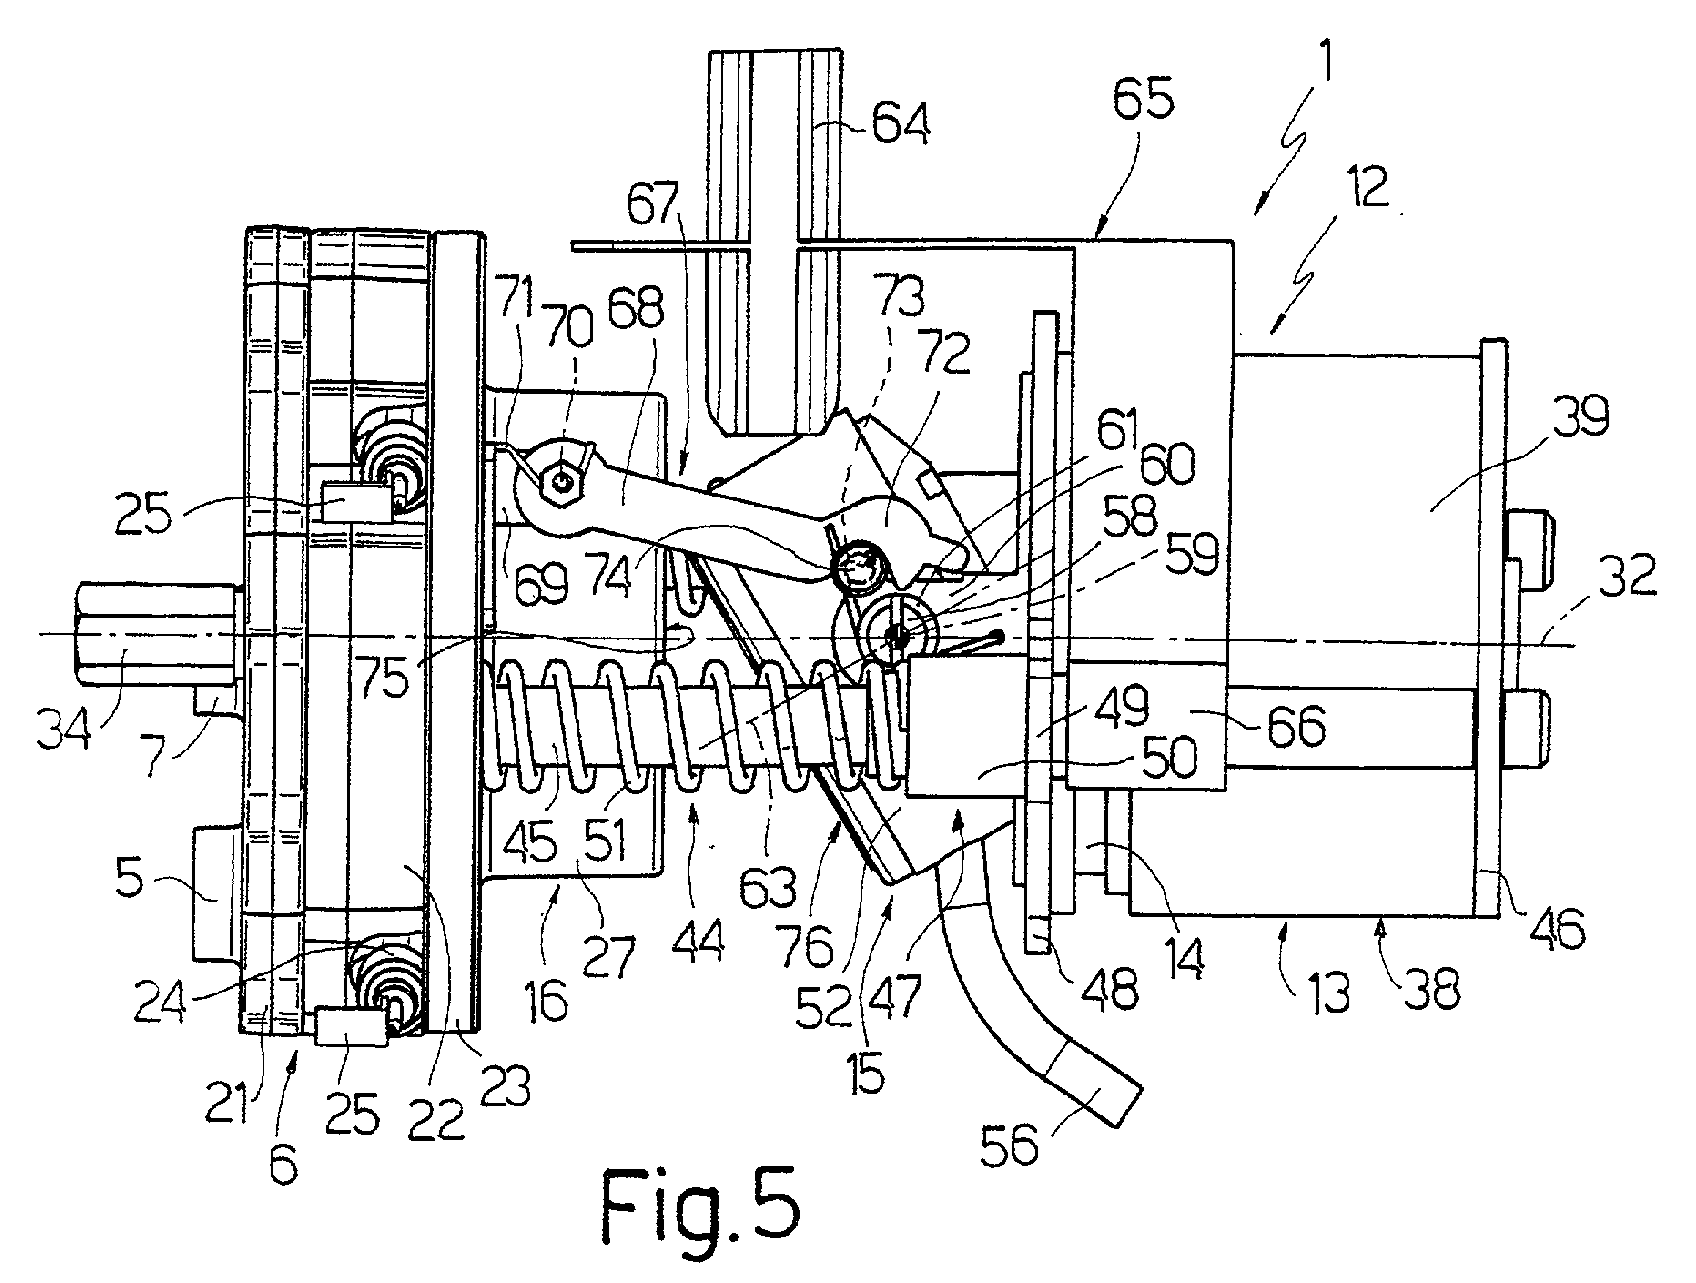 Ep1219217a1 Coffee Machine Google Patents Diagram Figure 00000001